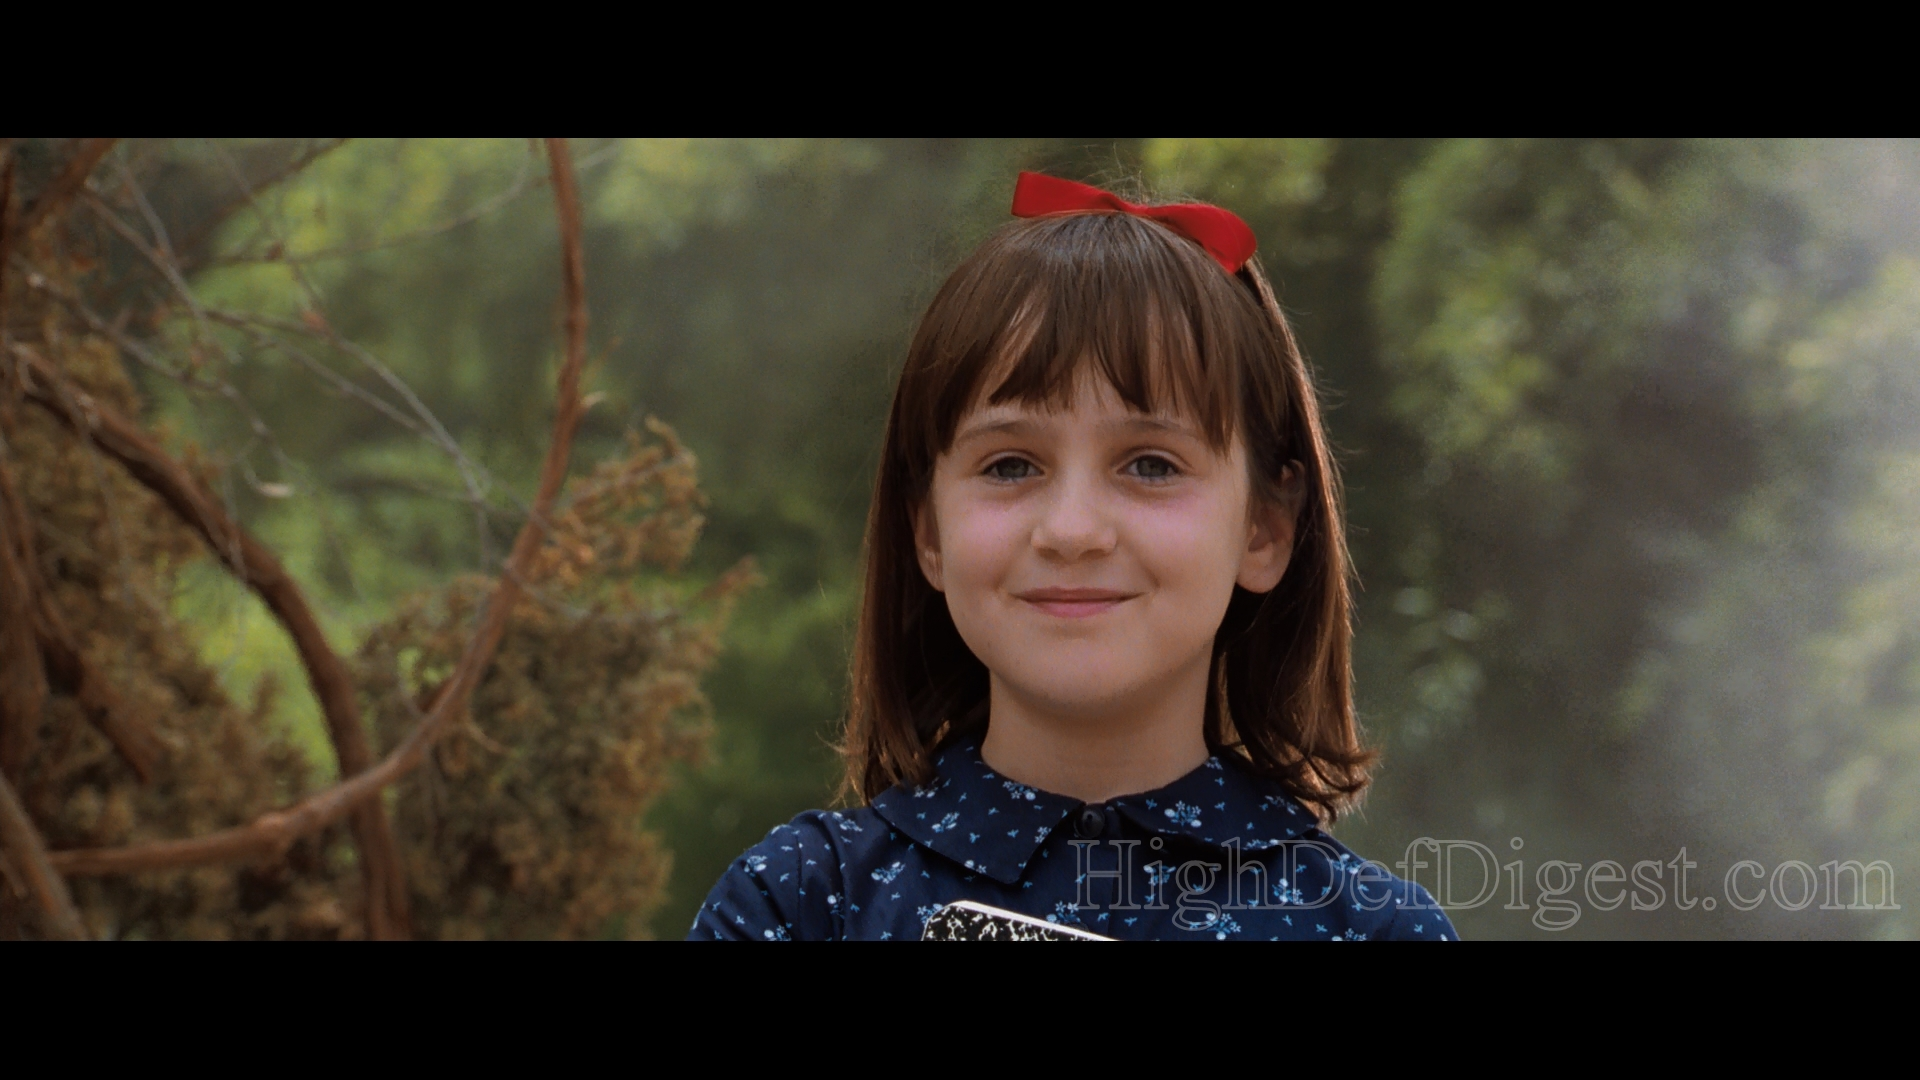 movie matilda Get the freshest reviews, news, and more delivered right to your inbox.